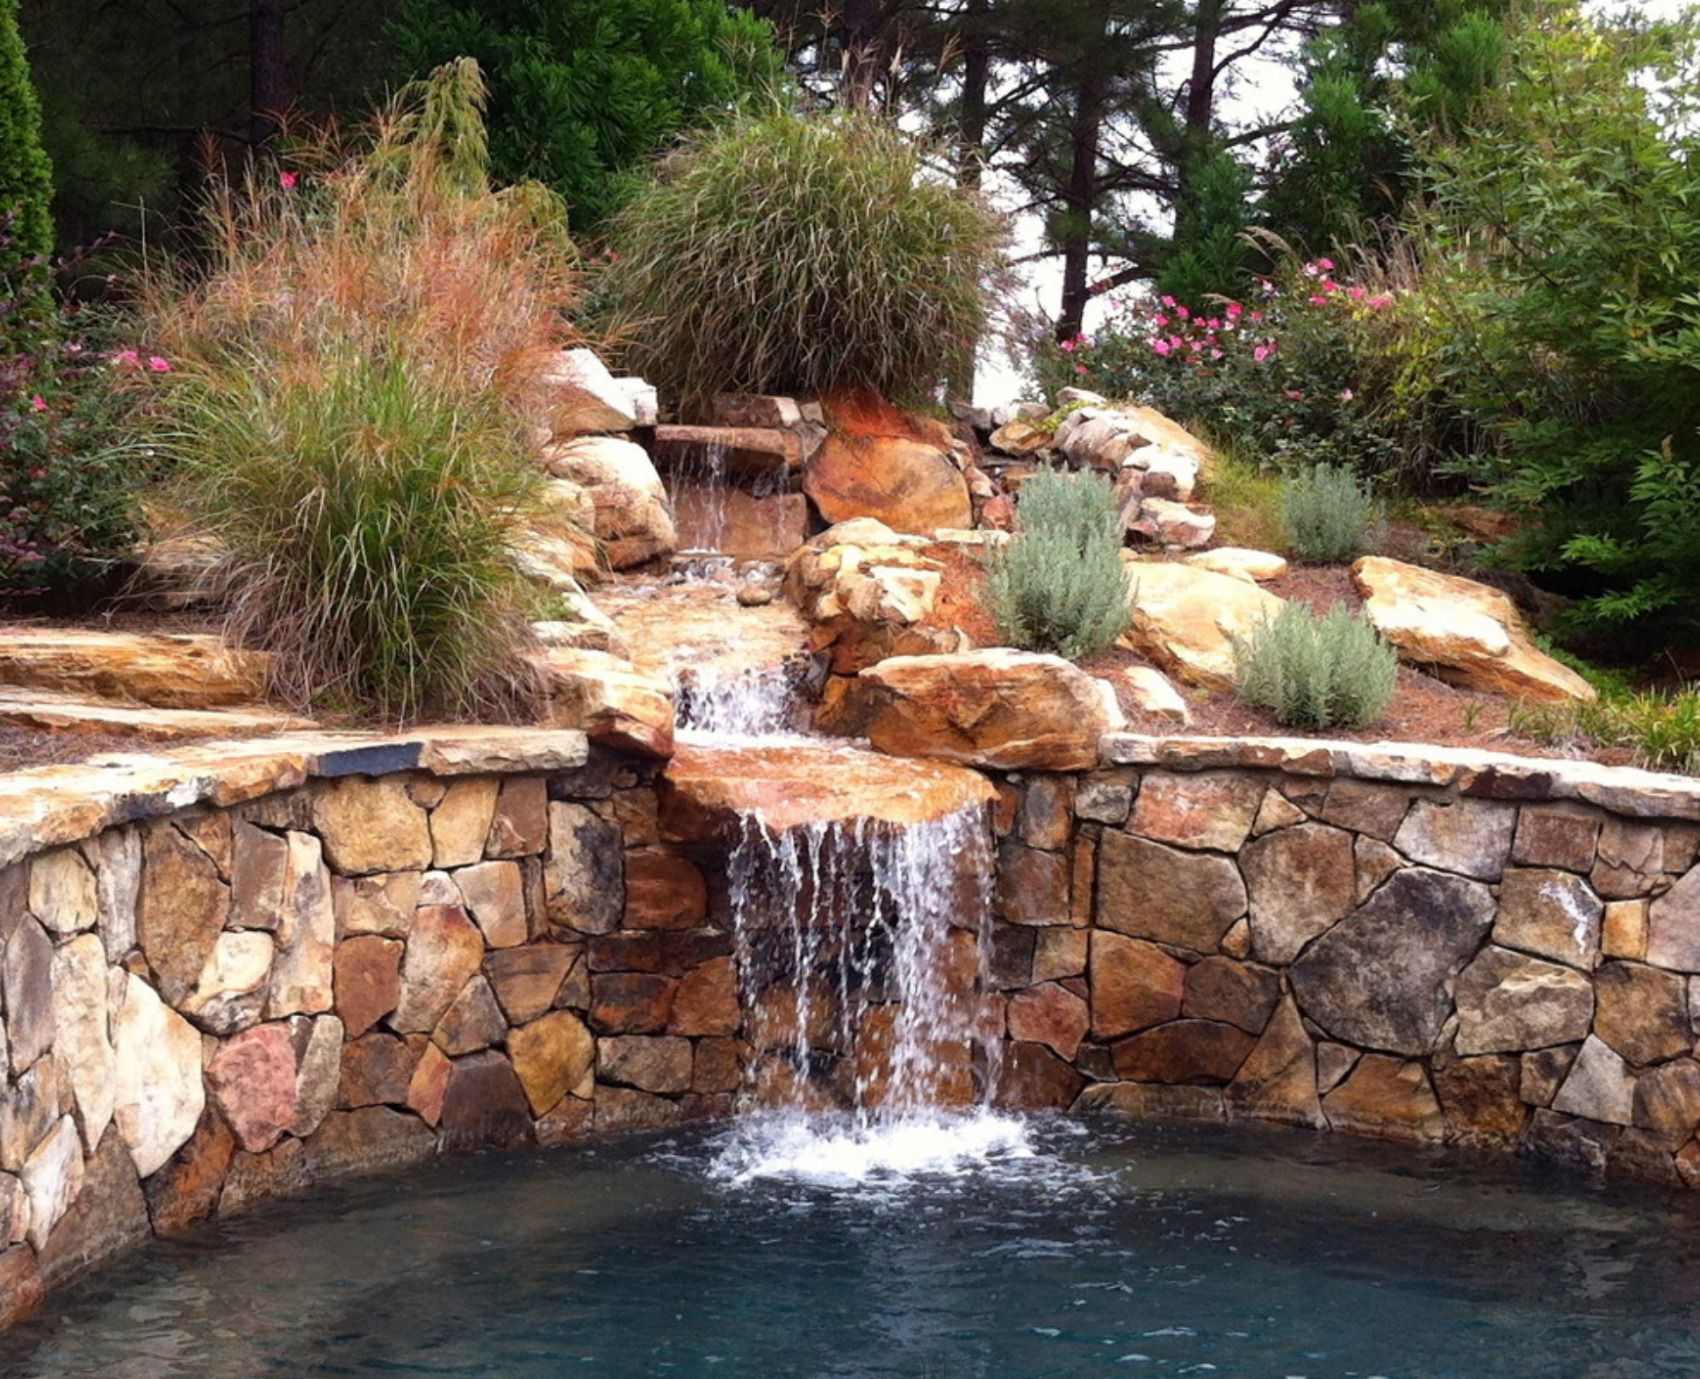 25 Pond Waterfall Designs and Ideas Raised Rock Water Garden Designs on raised rock garden ideas, raised vegetable garden plans, raised flower garden ideas,